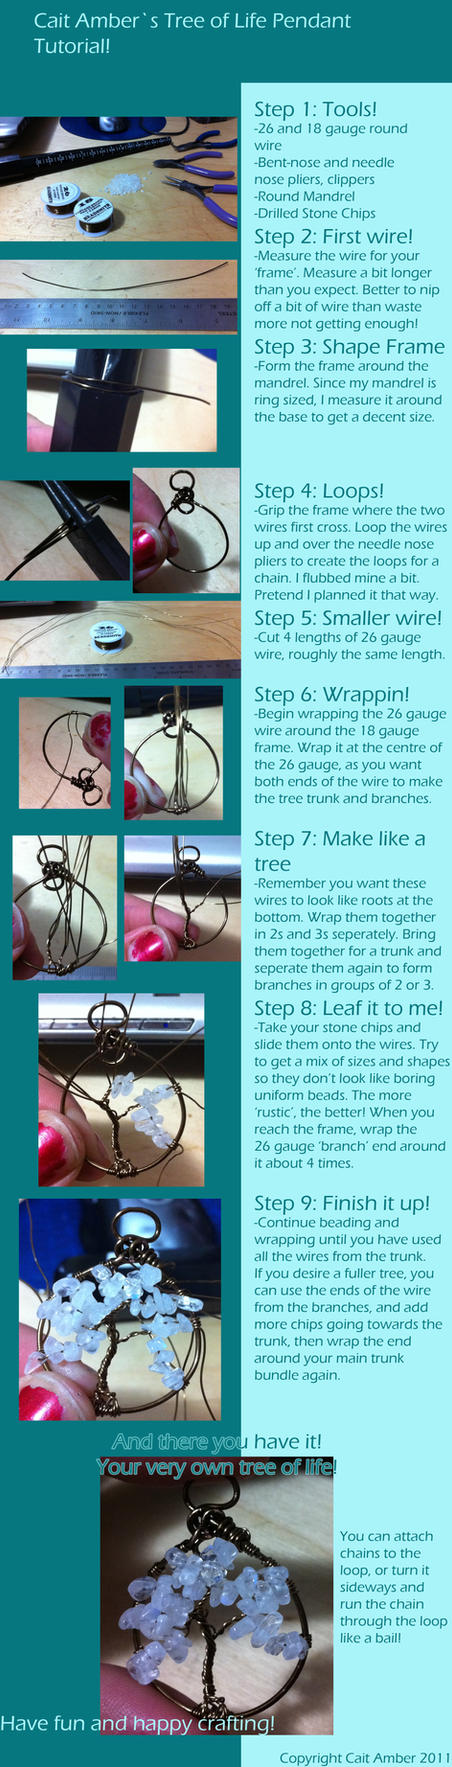 Tree of Life Pendant Tutorial by tanyquil